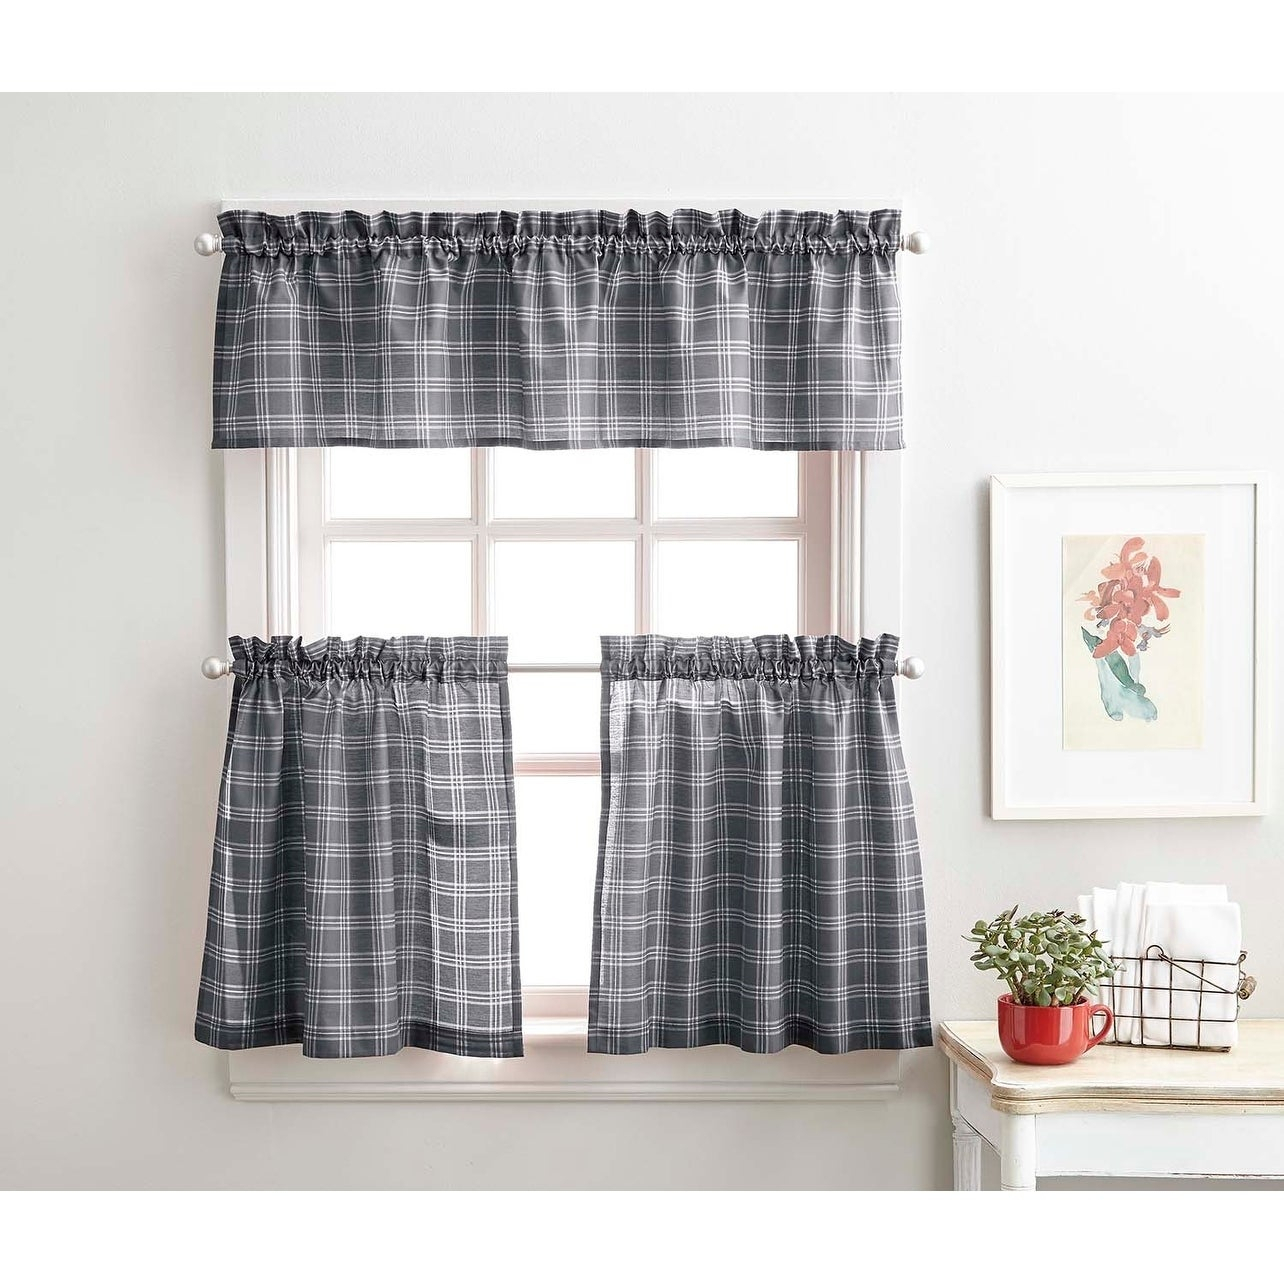 Details About Lodge Plaid 3 Piece Kitchen Curtain Tier And Valance Set – Inside Scroll Leaf 3 Piece Curtain Tier And Valance Sets (View 2 of 20)